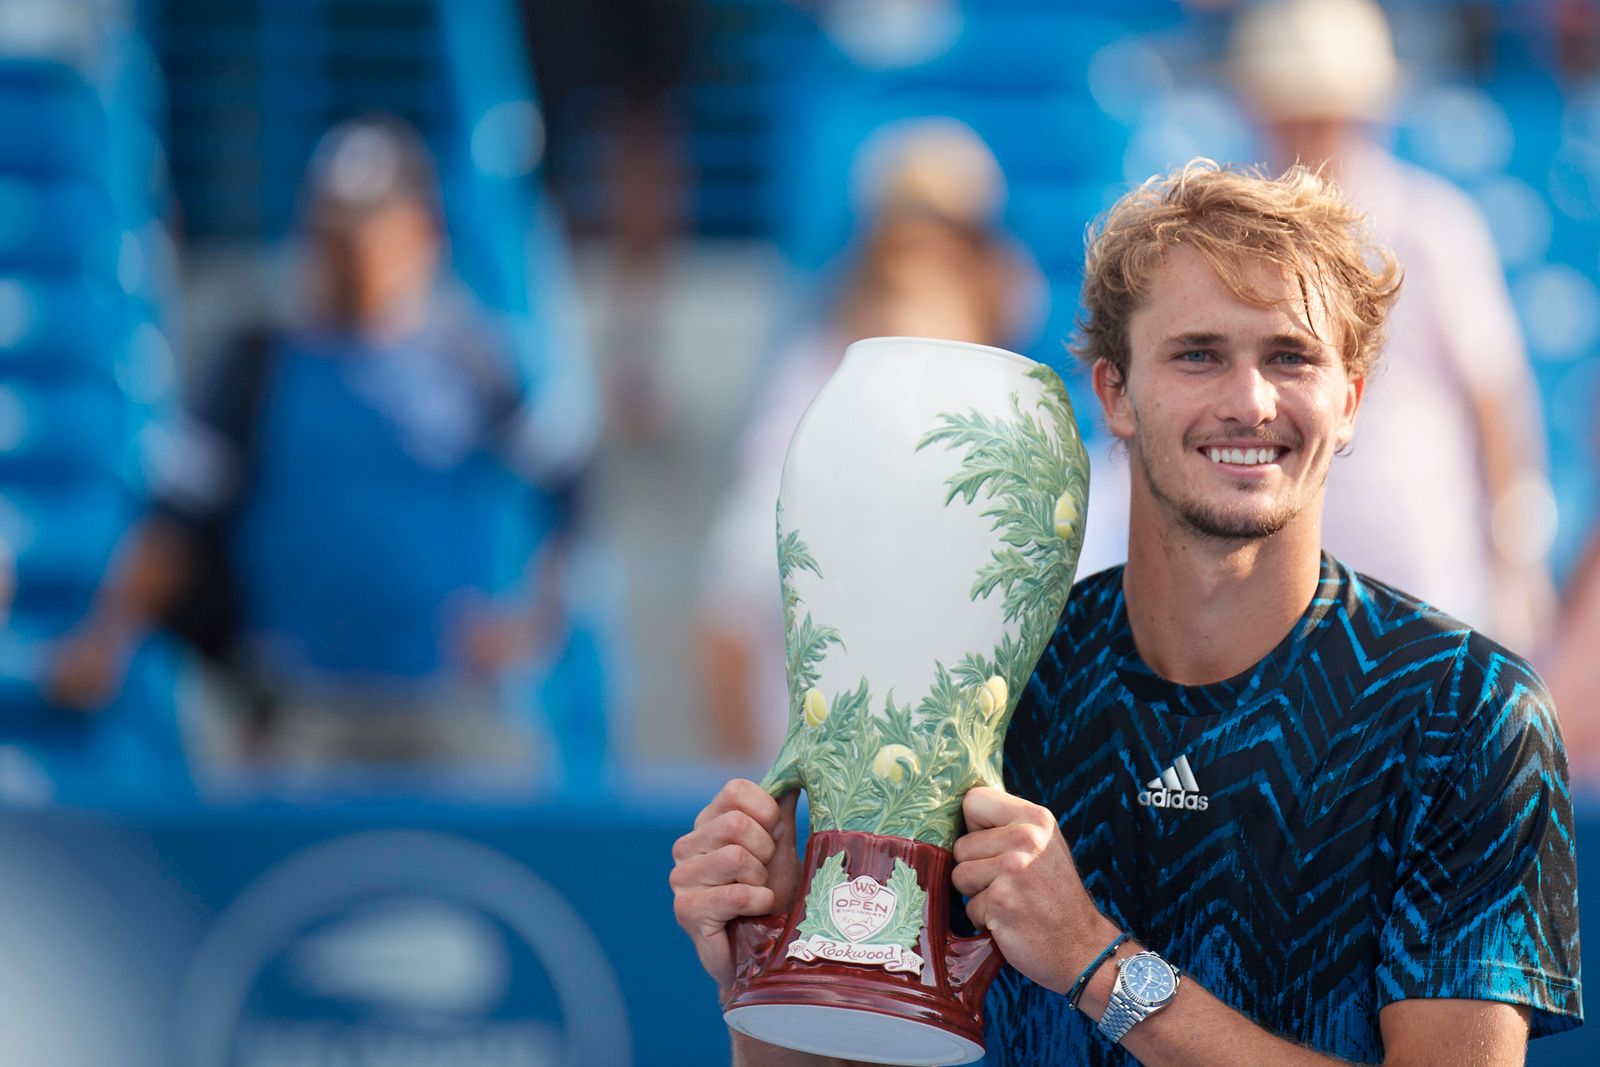 CINCINNATI, OH - AUGUST 22: Alexander Zverev of Germany holds the Rookwood Cup after winning the menÕs championship mat